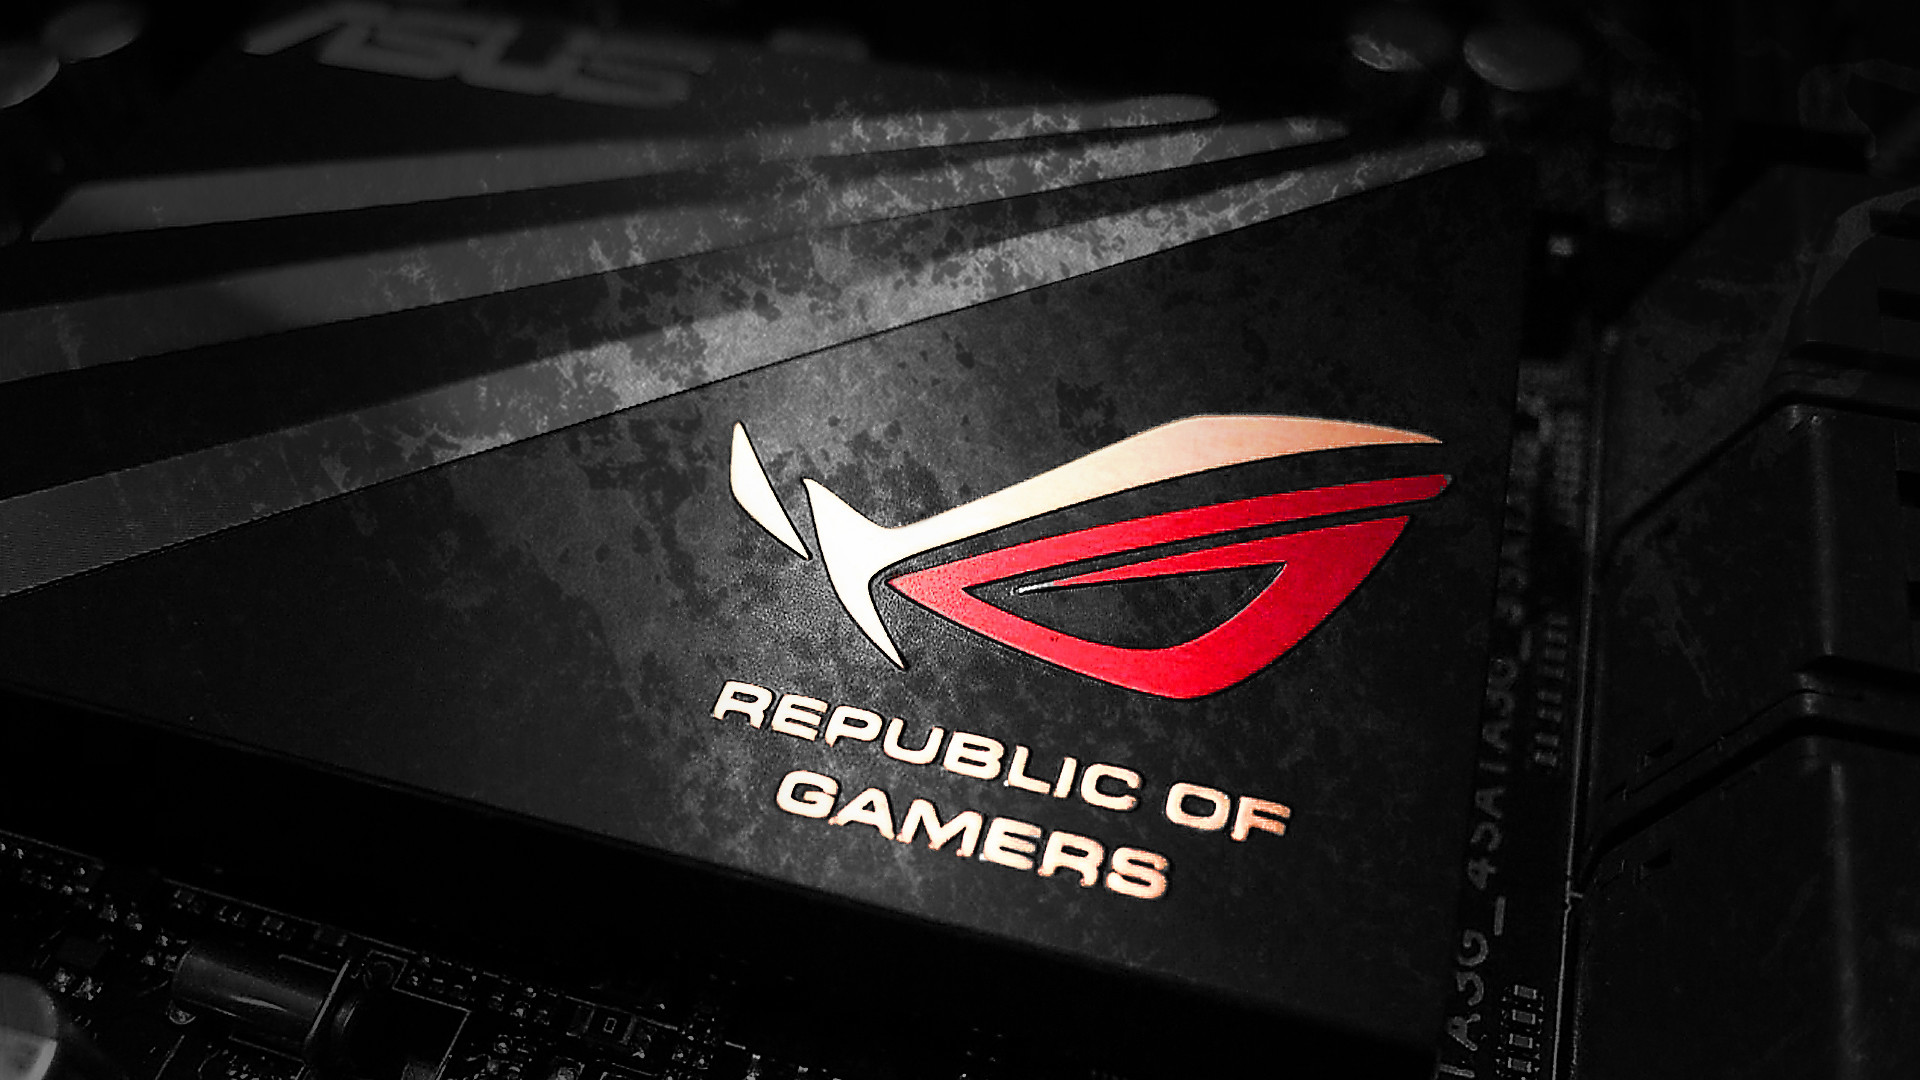 ASUS Republic of Gamers Wallpaper Pack v2 by BlaCkOuT1911 on ~ Laptops